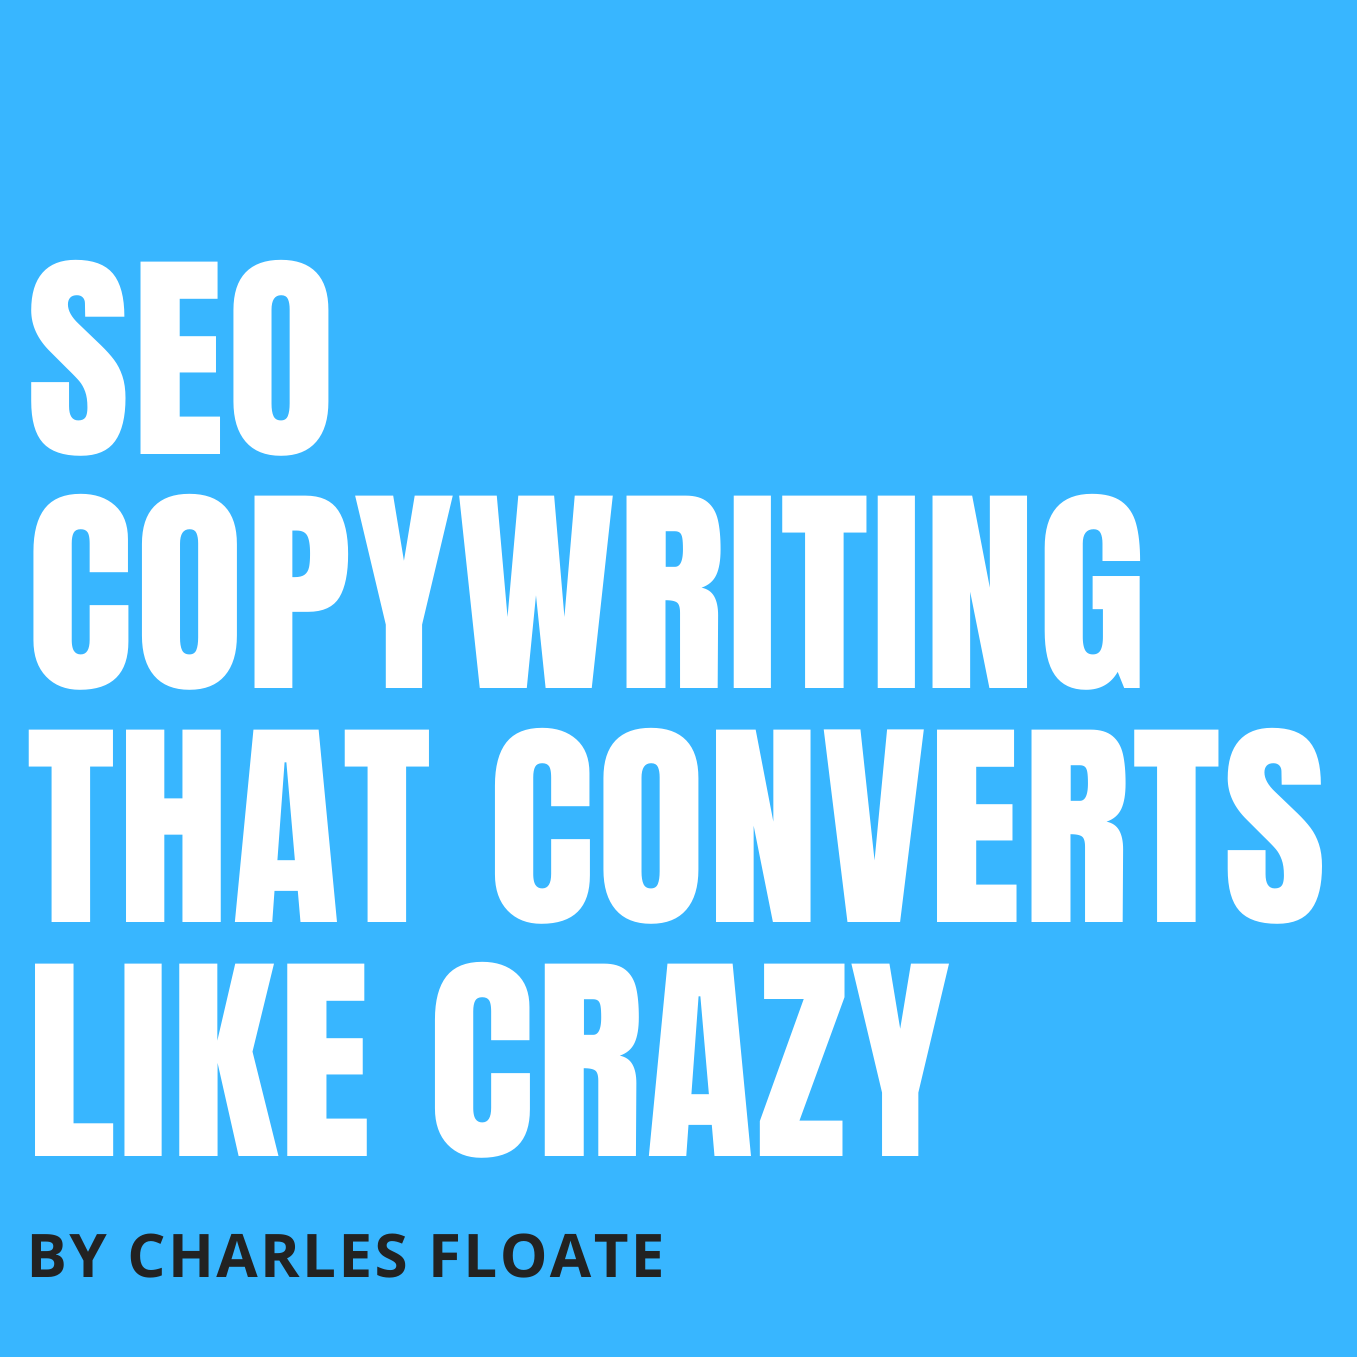 SEO Copywriting That Converts Like Crazy - $99